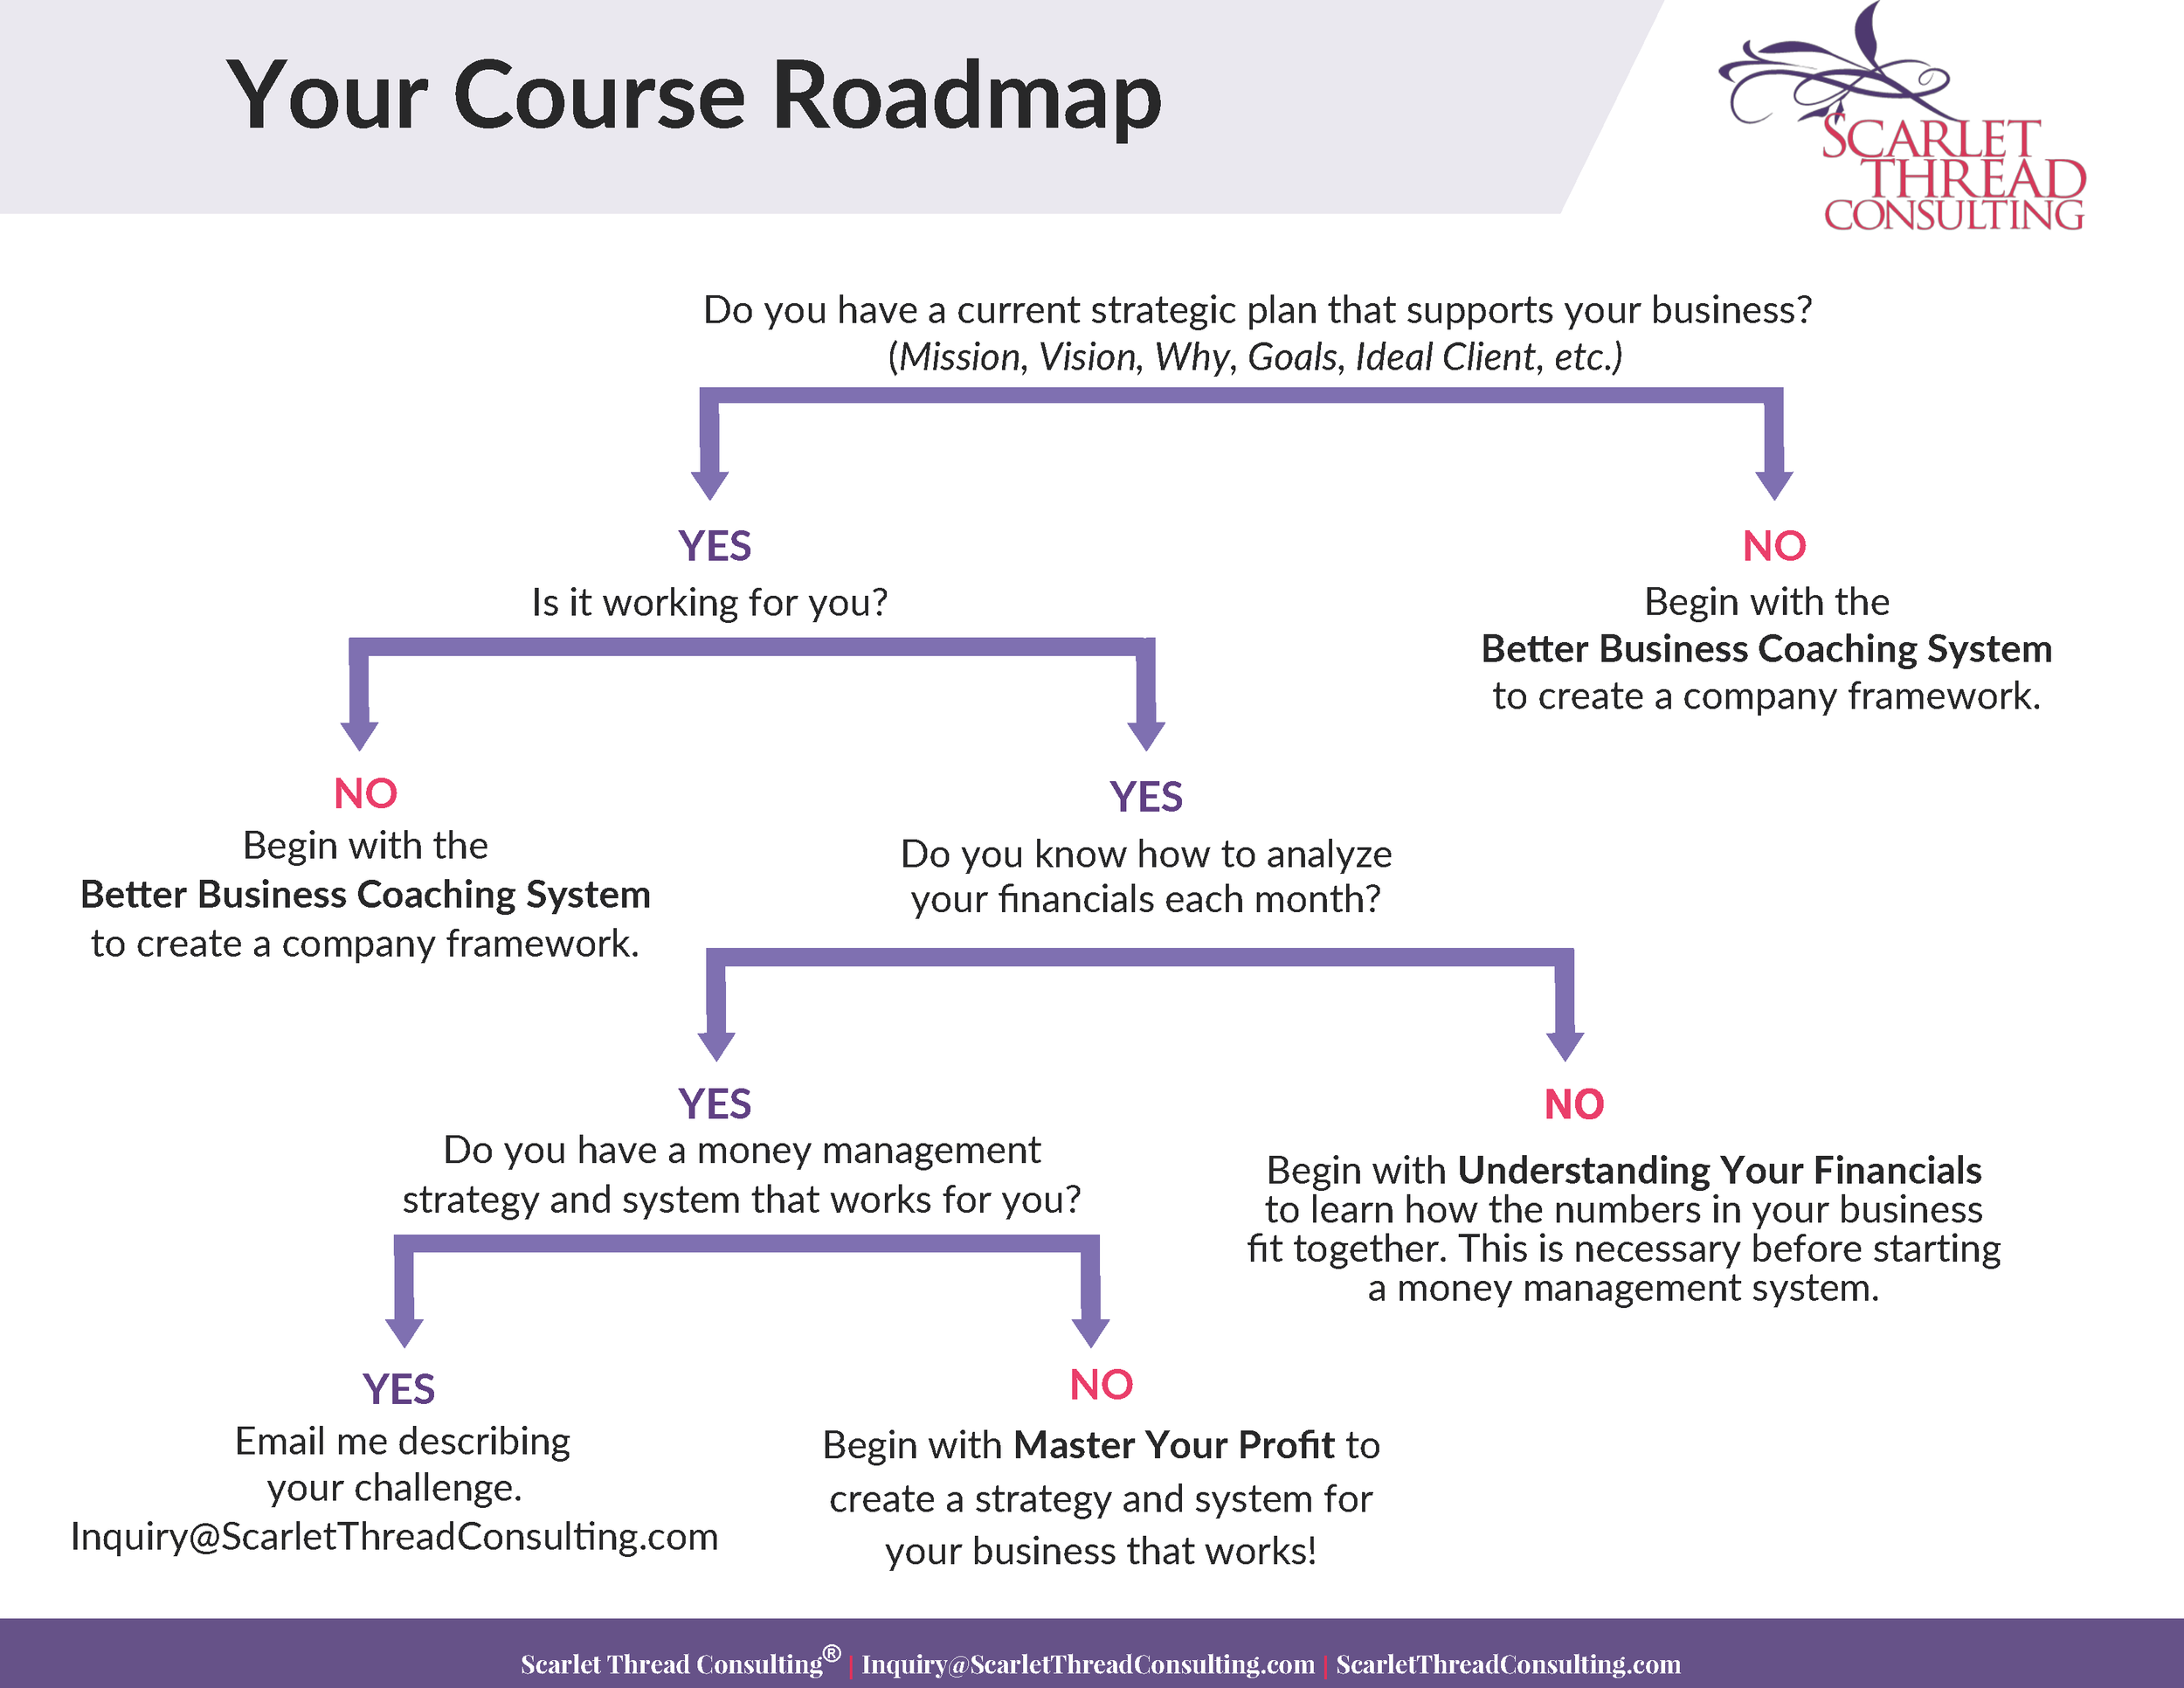 Scarlet Thread Consulting Course Roadmap